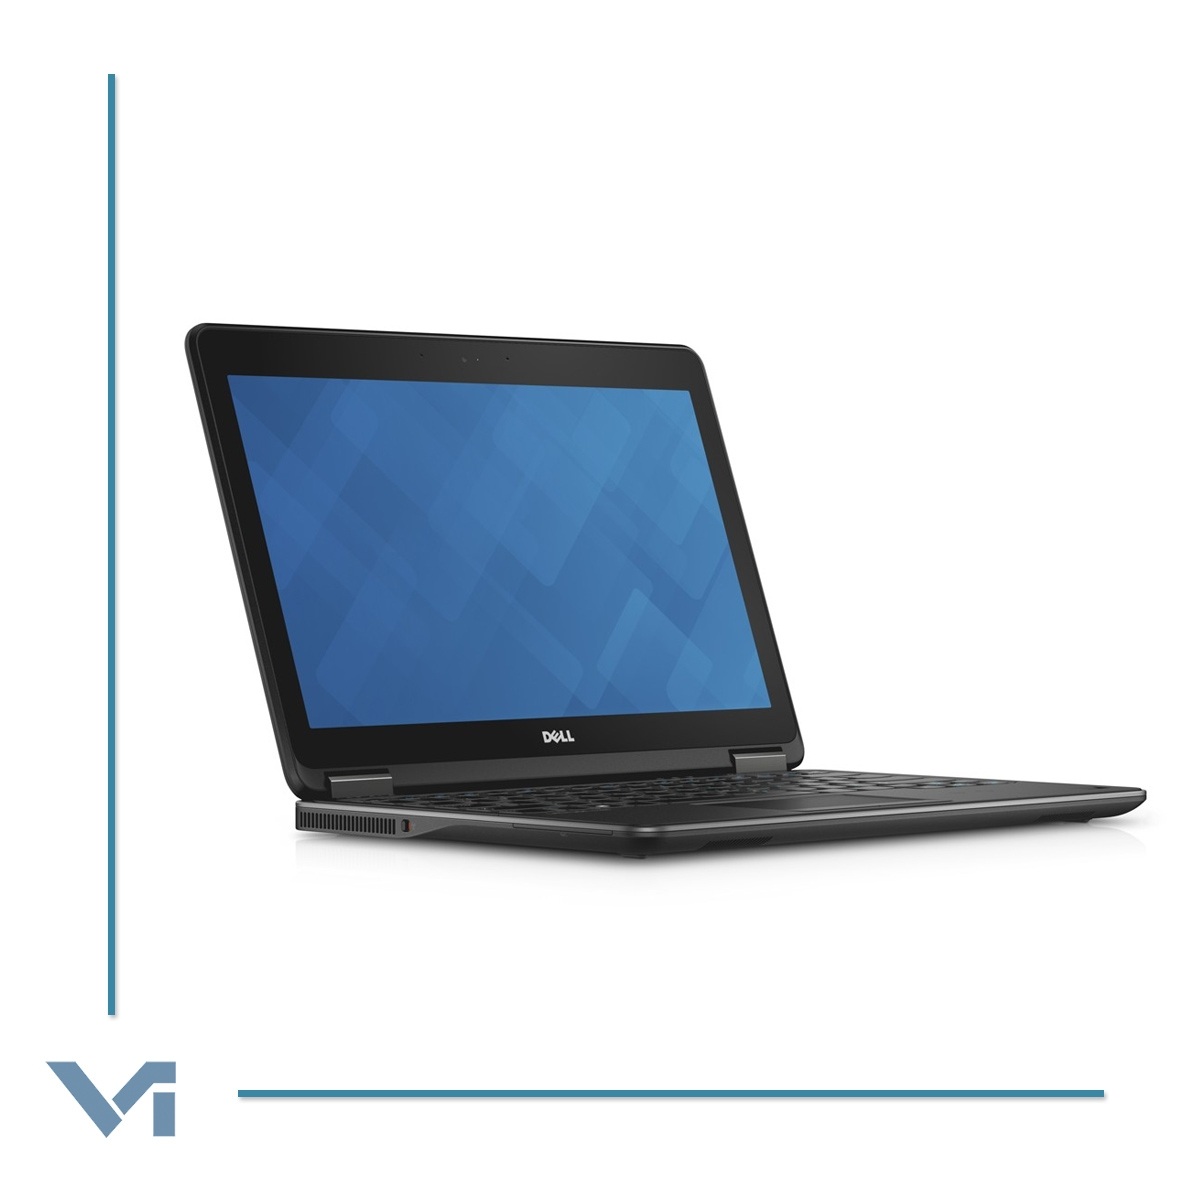 "Notebook DELL LATITUDE E7240 - Intel Core i5-4310U 4GB 128GB SSD 12.5"" LED Windows 7 Professional -NOCOLOR- Usato"